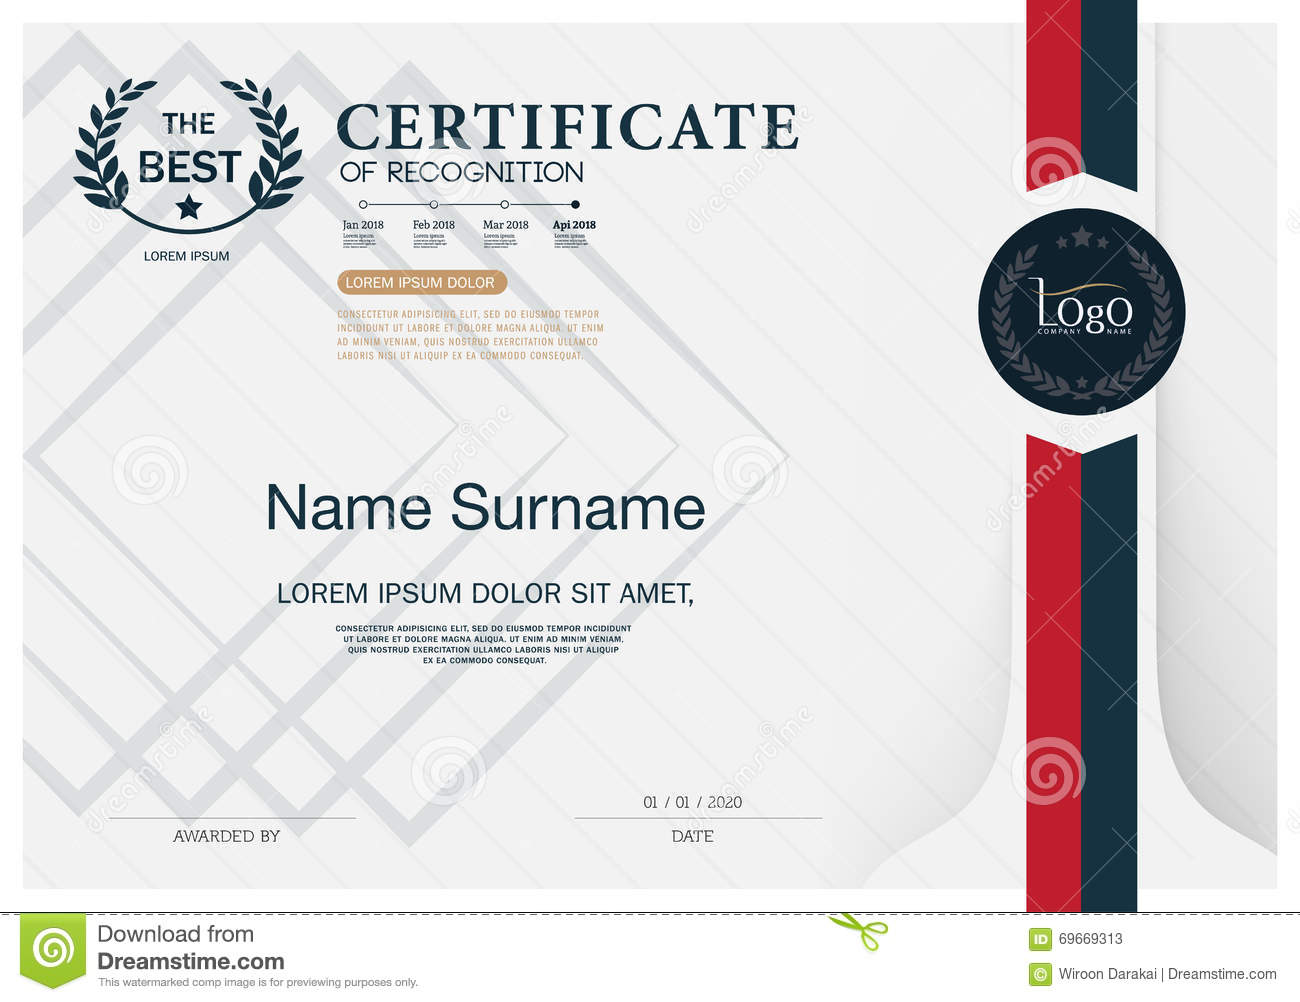 Certificate OF RECOGNITION Frame Design Template Layout Template In - Certificate of recognition template